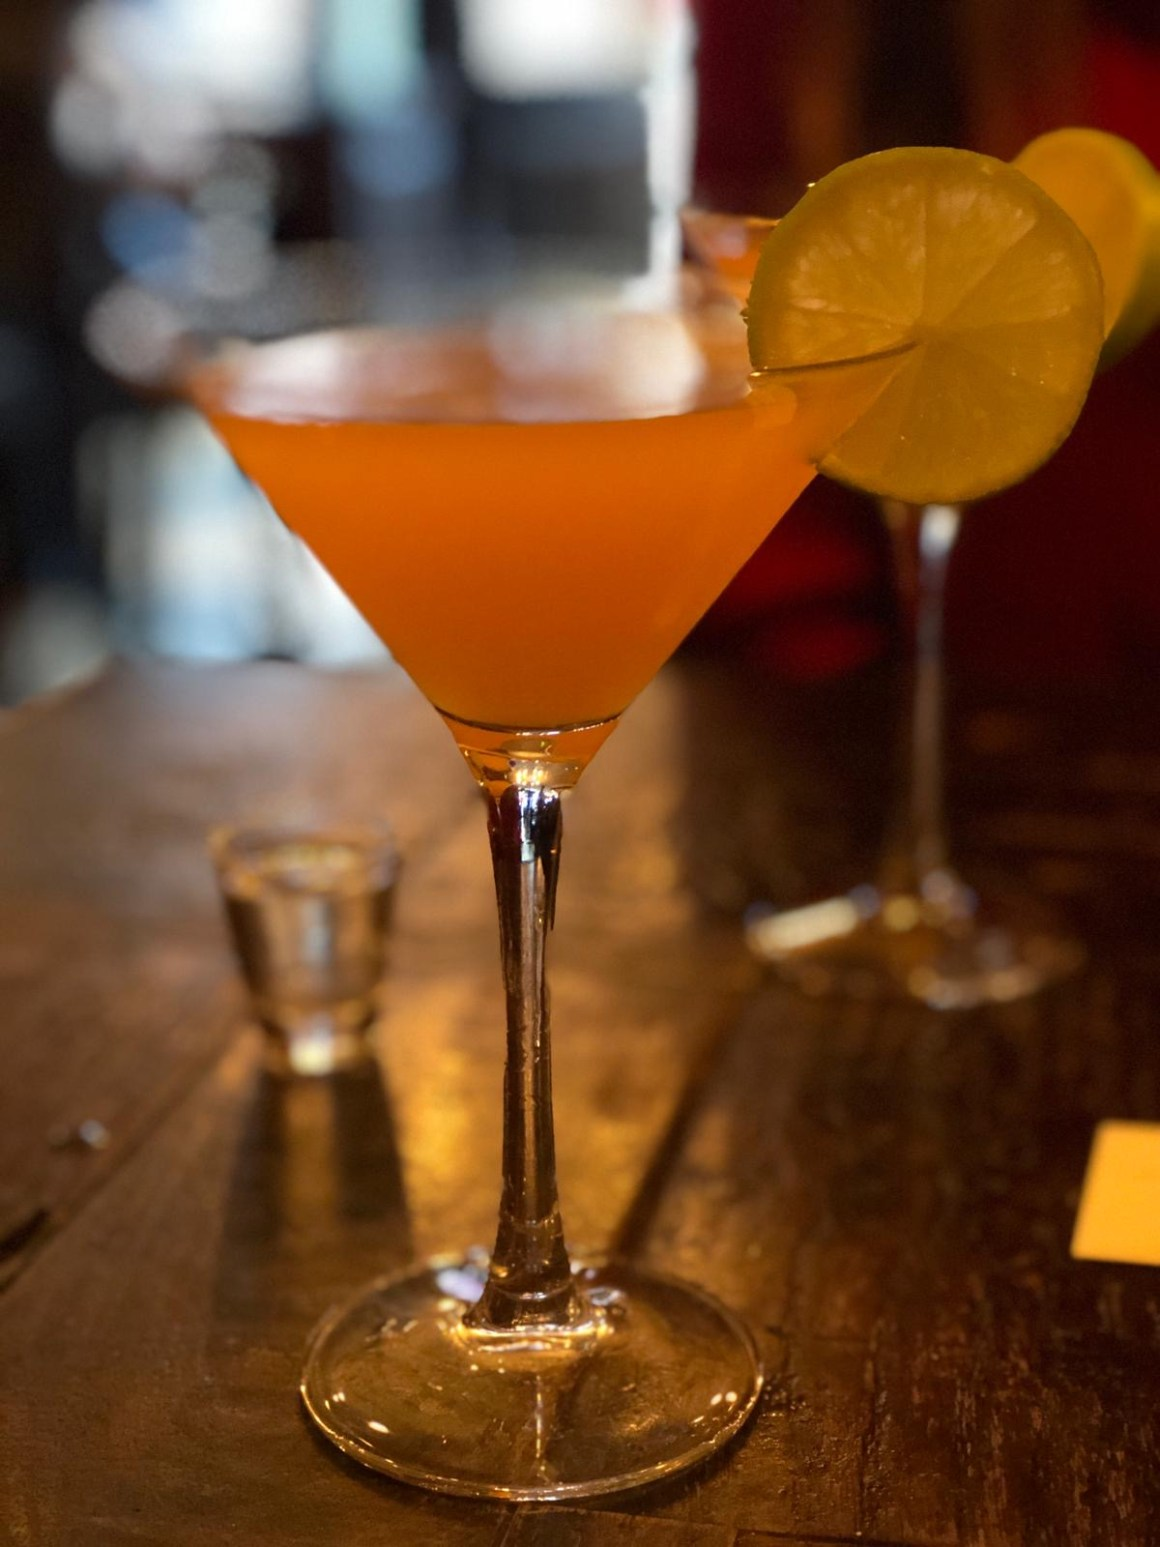 Dry January: Has it fuelled my alcohol dependence?